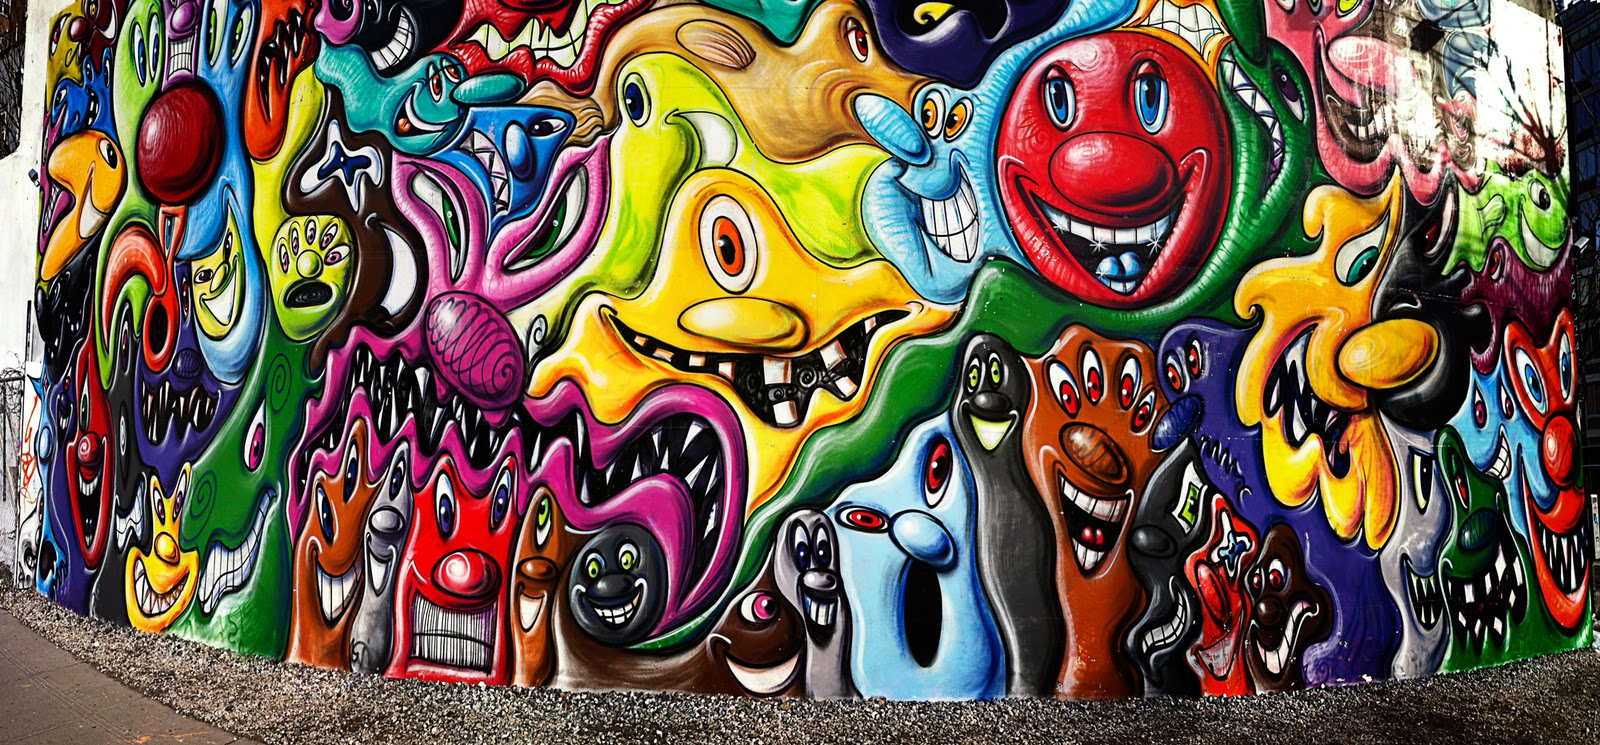 Q studios inc kenny scharf mural on houston bowery nyc for Bowery mural nyc